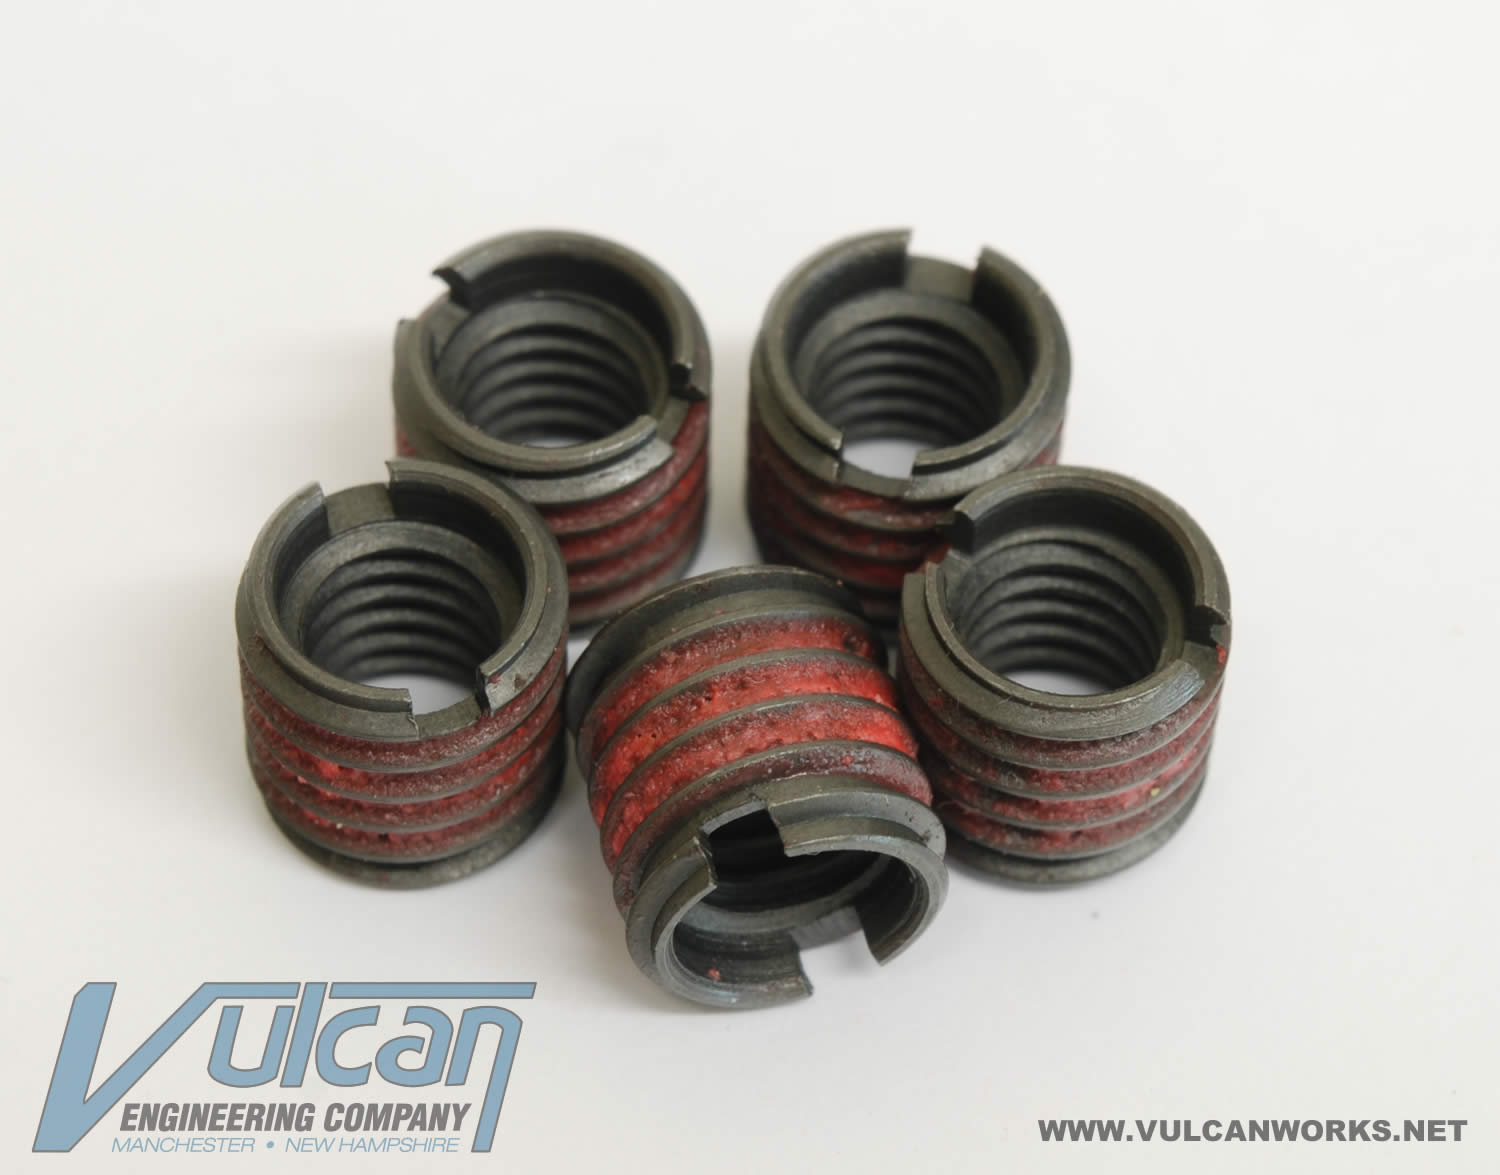 Threaded Inserts for Wheels, 5/16-18 to 7/16-14